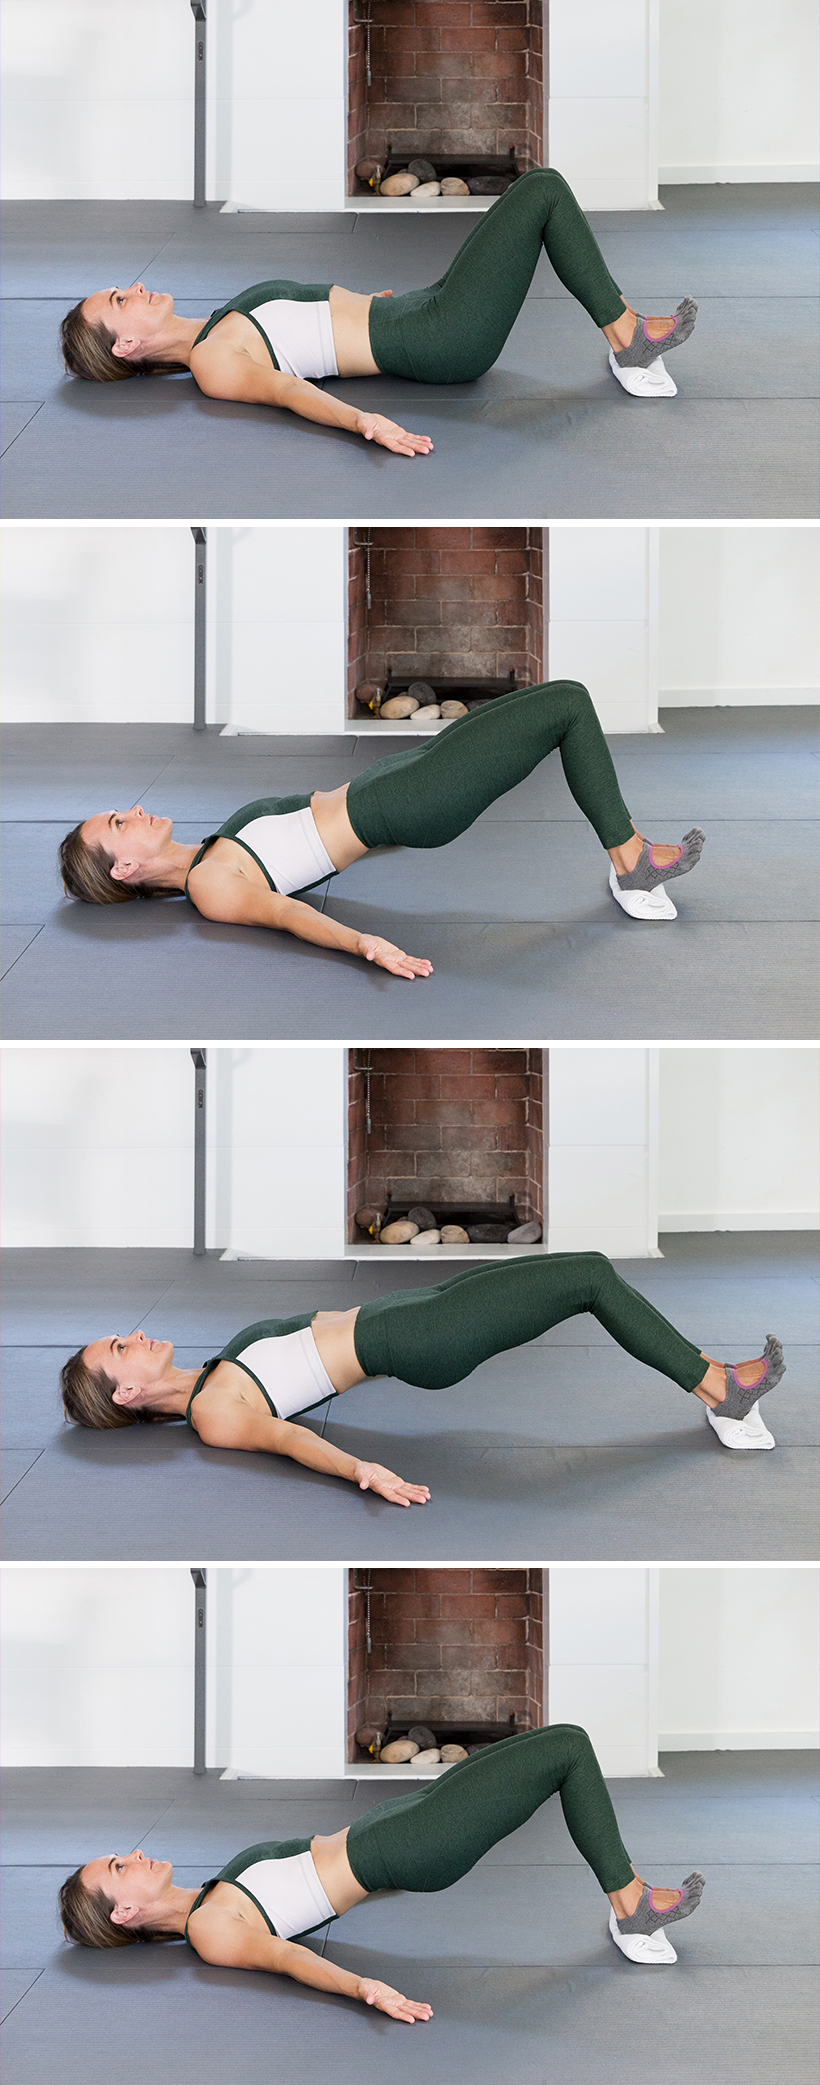 sliding hamstring curls - totally gonna try this while watching TV to work out my butt!